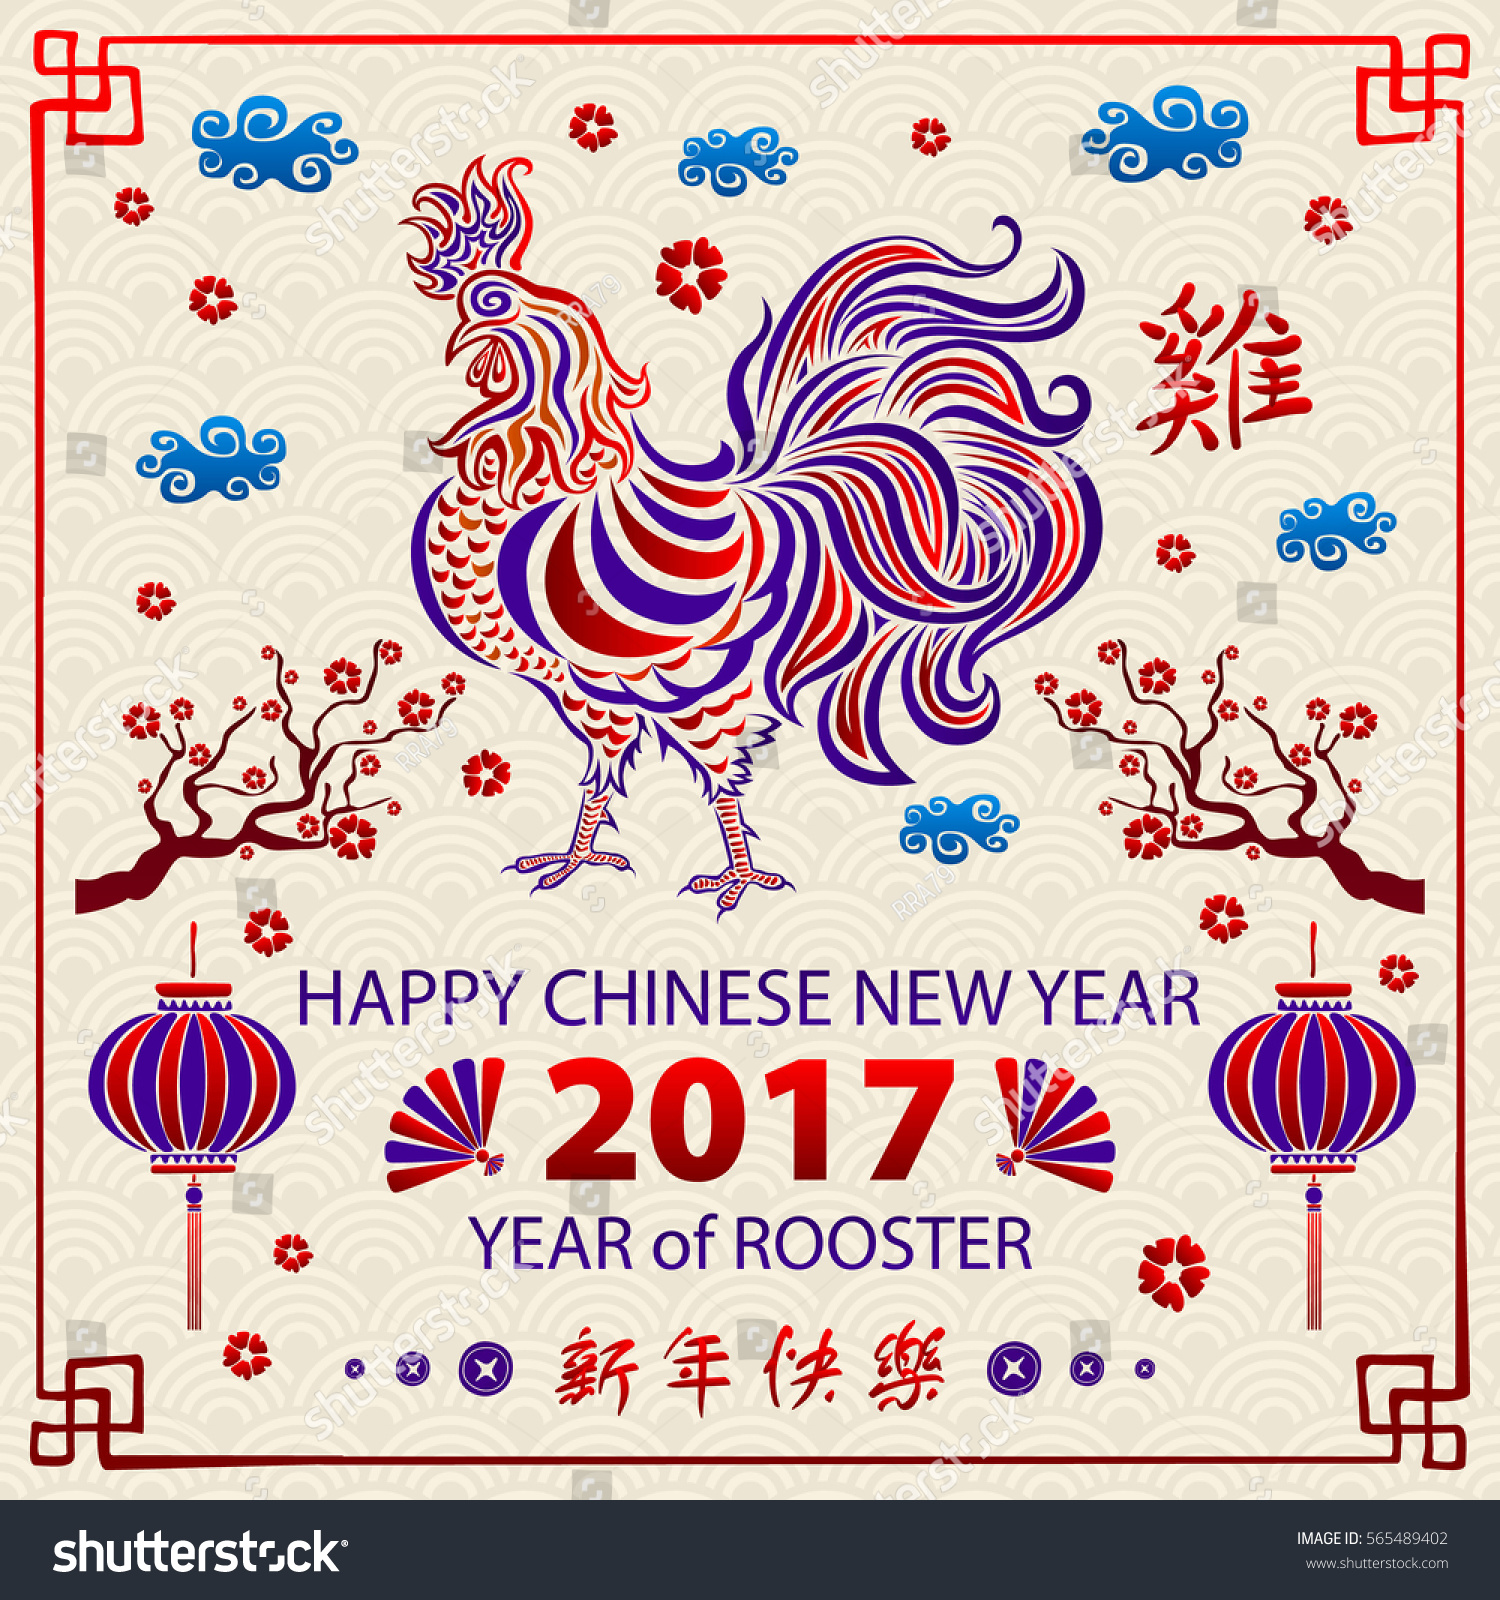 Calligraphy happy chinese new year stock illustration